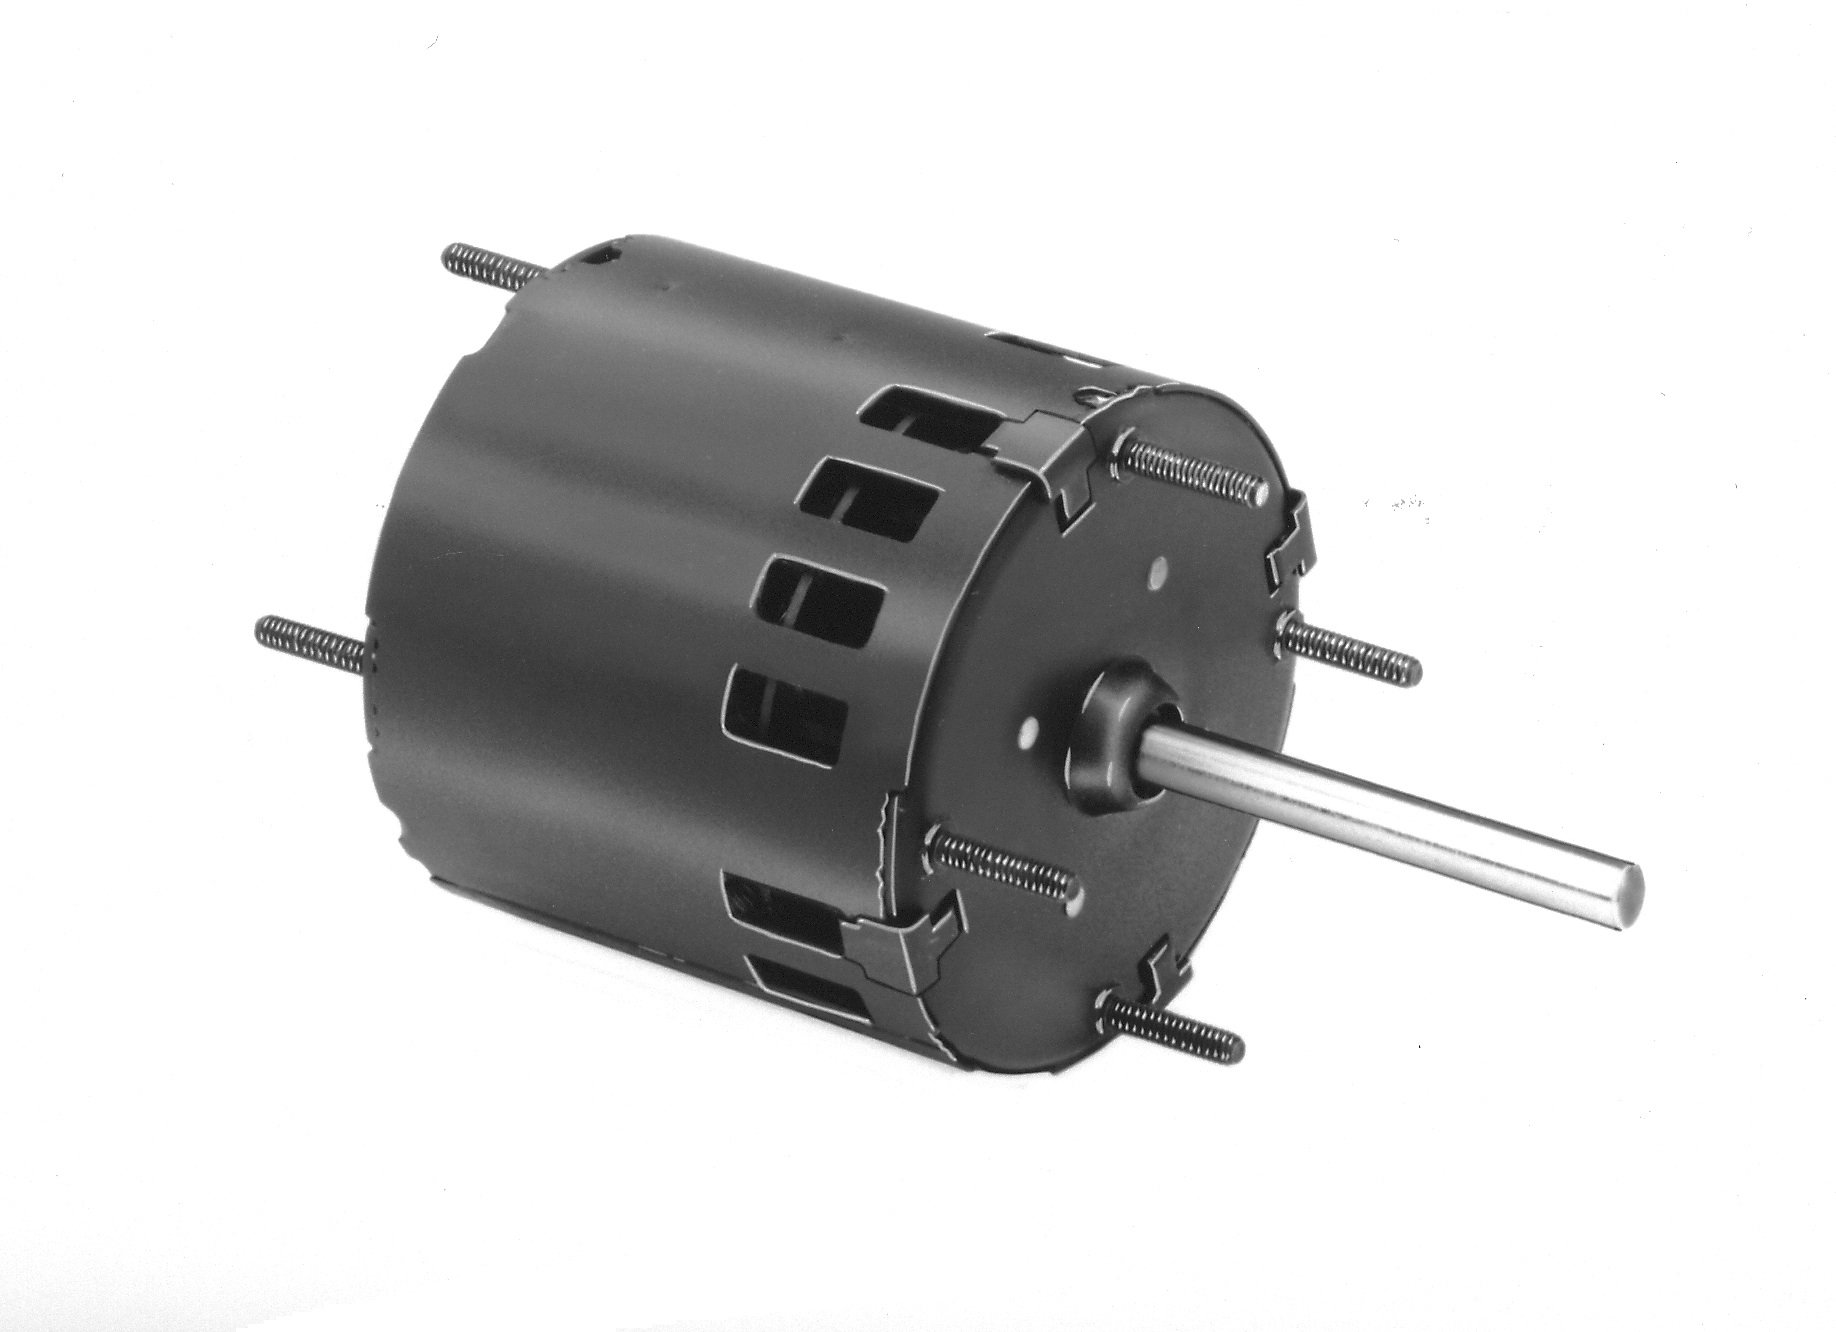 Fasco D332 3.3'' Frame Open Ventilated Shaded Pole General Purpose Motor with Sleeve Bearing, 1/25-1/65HP, 1500rpm, 115V, 60Hz, 1.5-0.8 amps